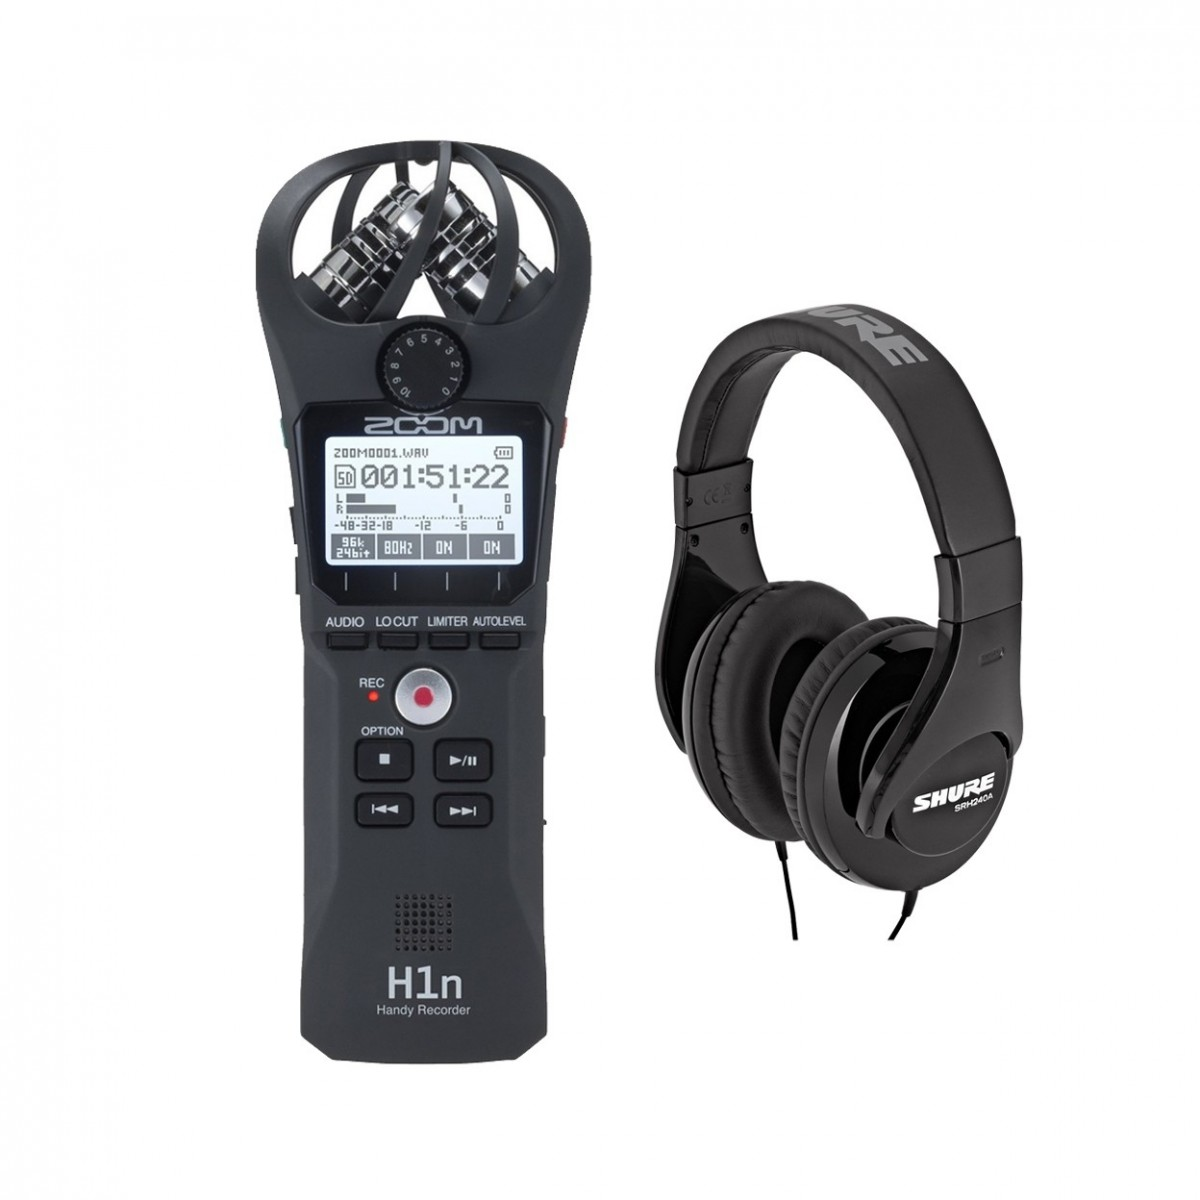 Zoom H1n Recorder Black with Shure SRH240A Headphones